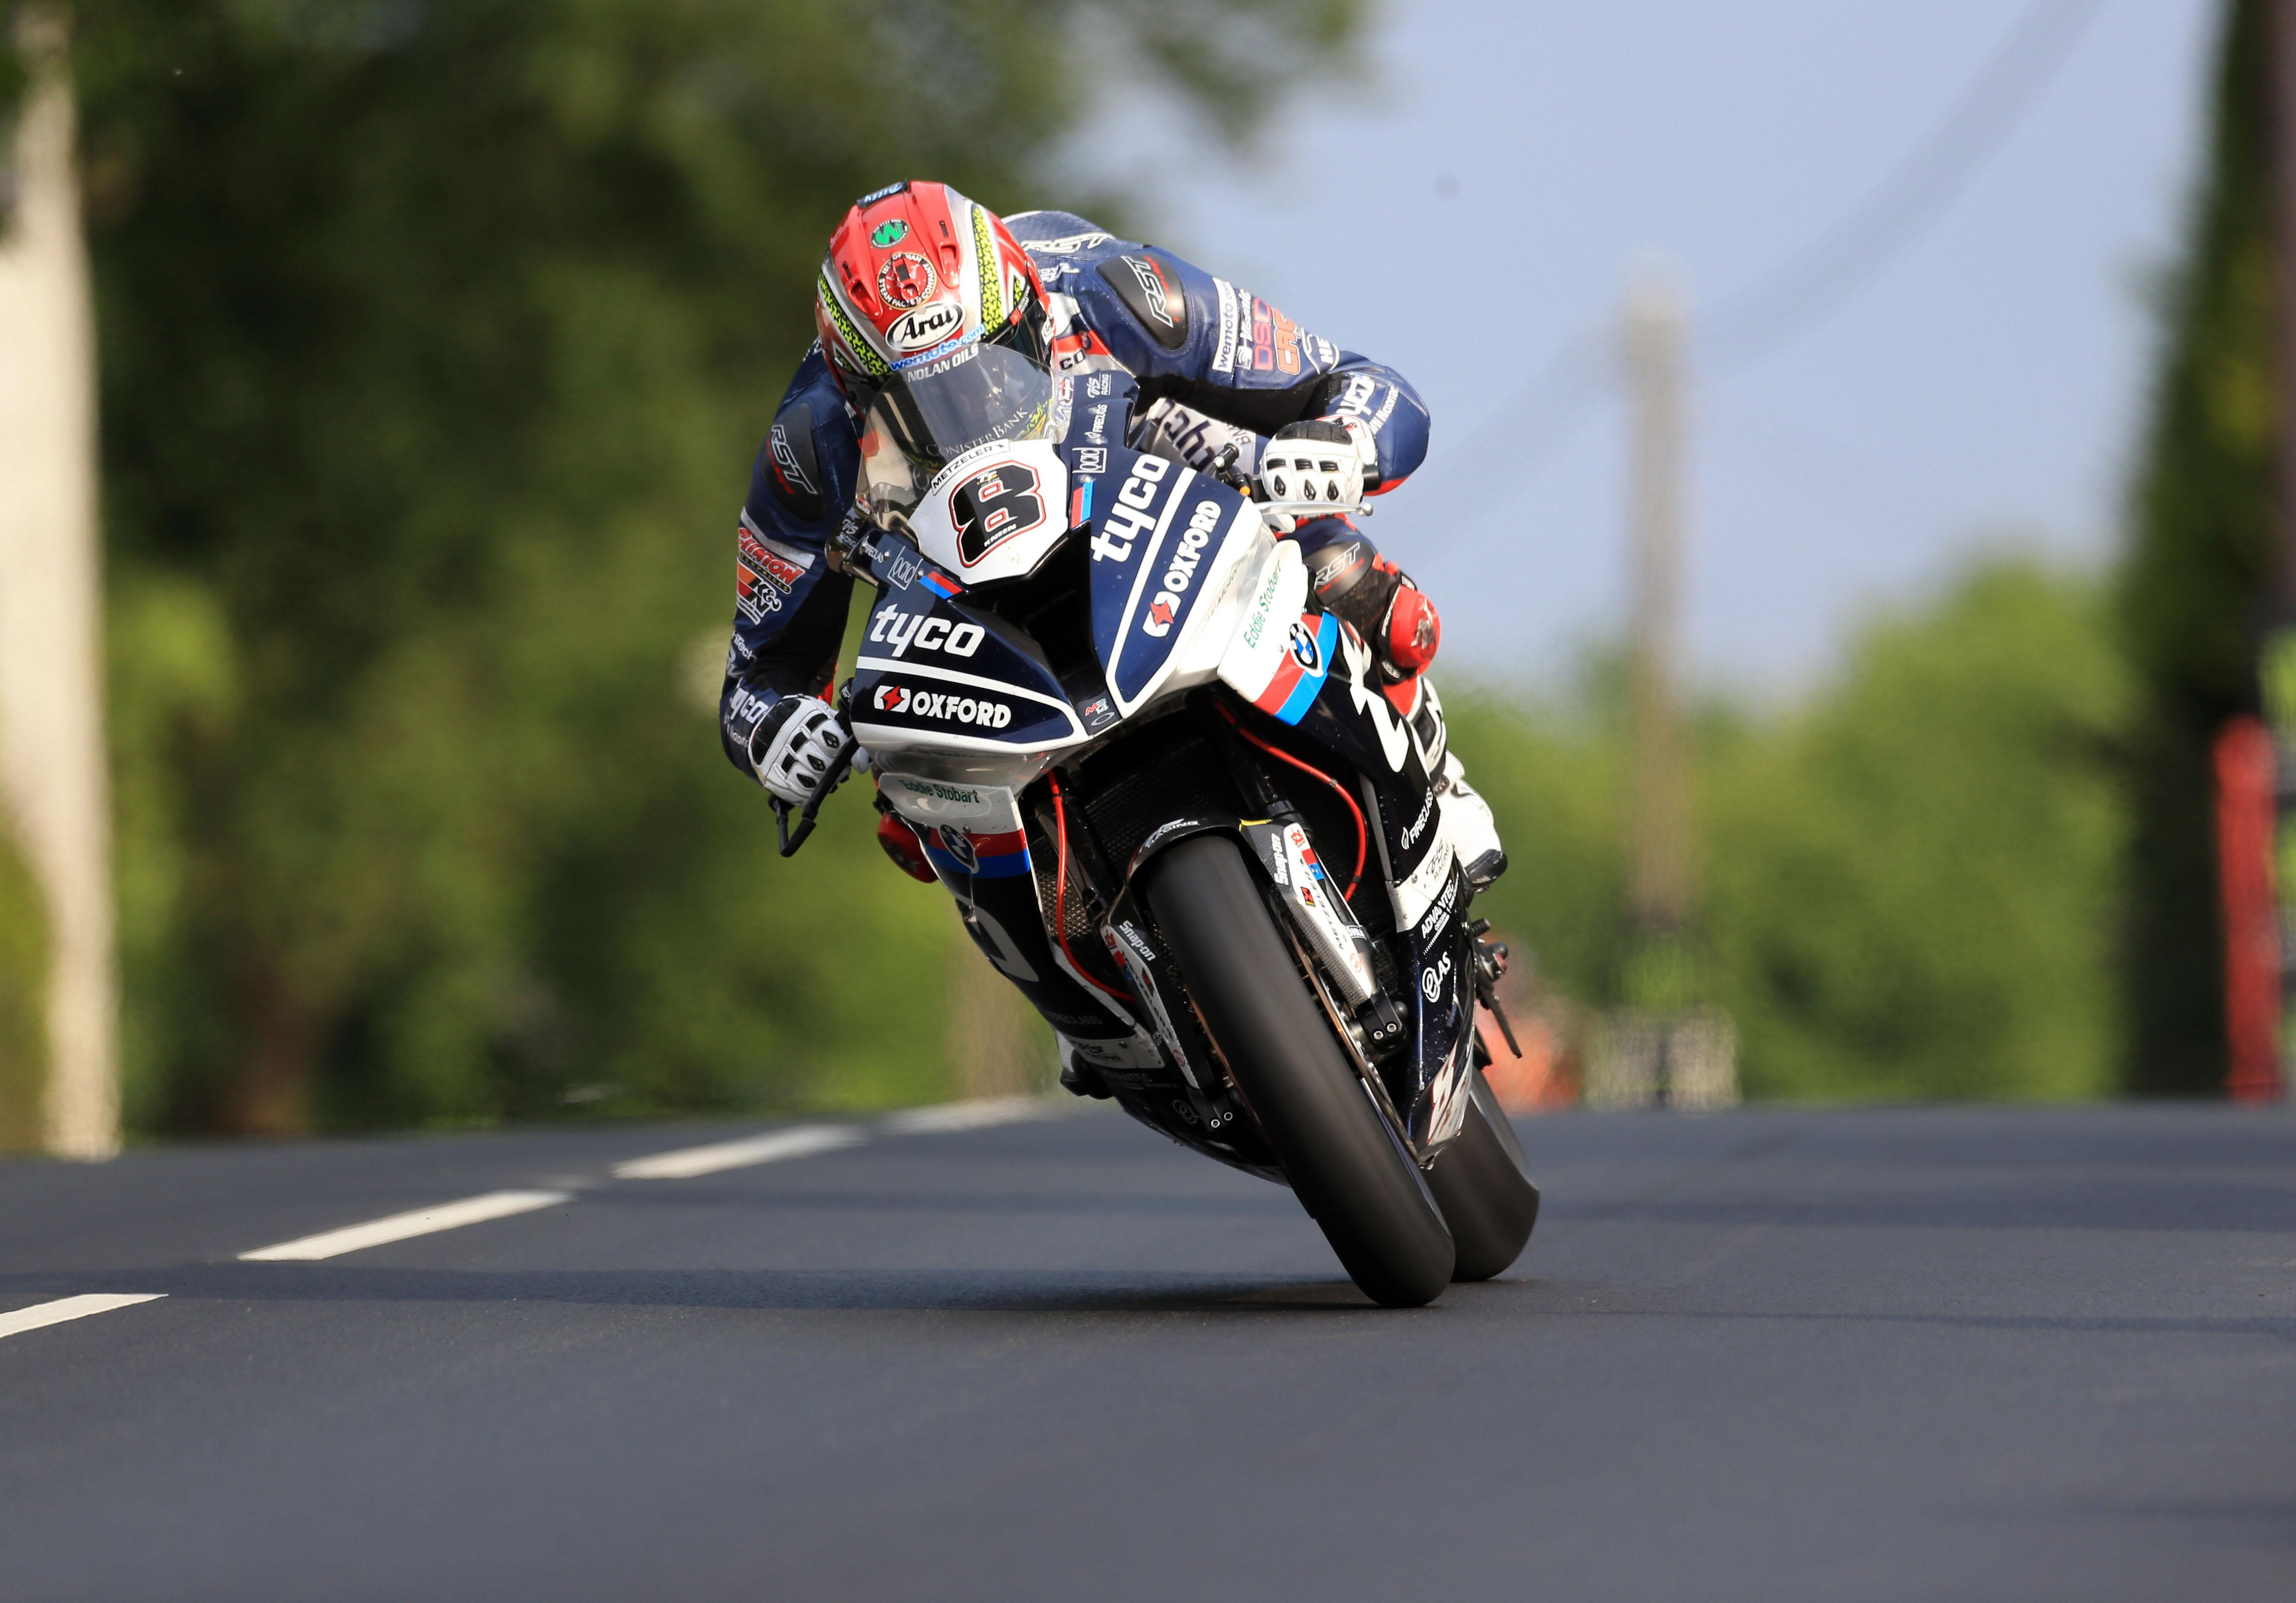 The tragedy comes just days after Dan Kneen was killed during practice